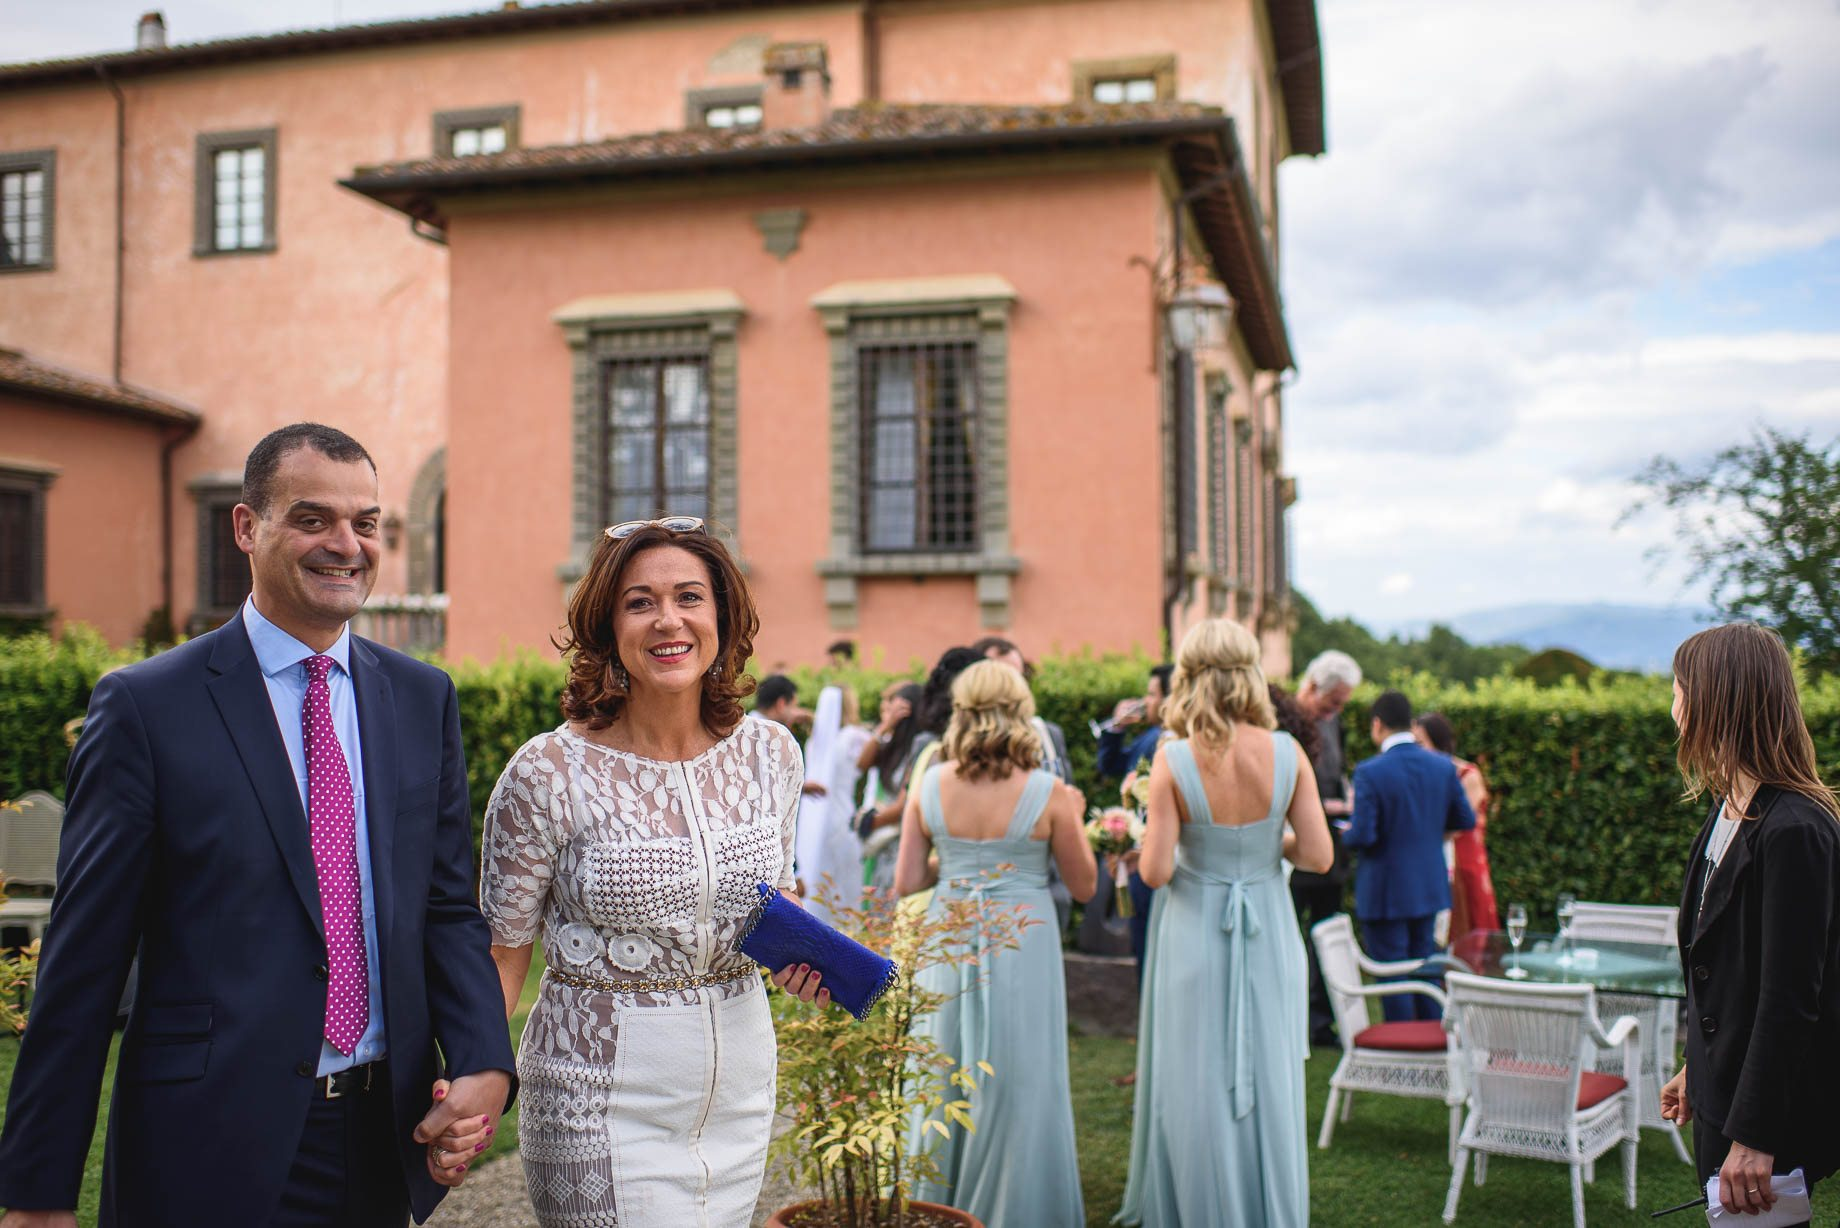 Tuscany wedding photography - Roisin and Moubin - Guy Collier Photography (126 of 251)